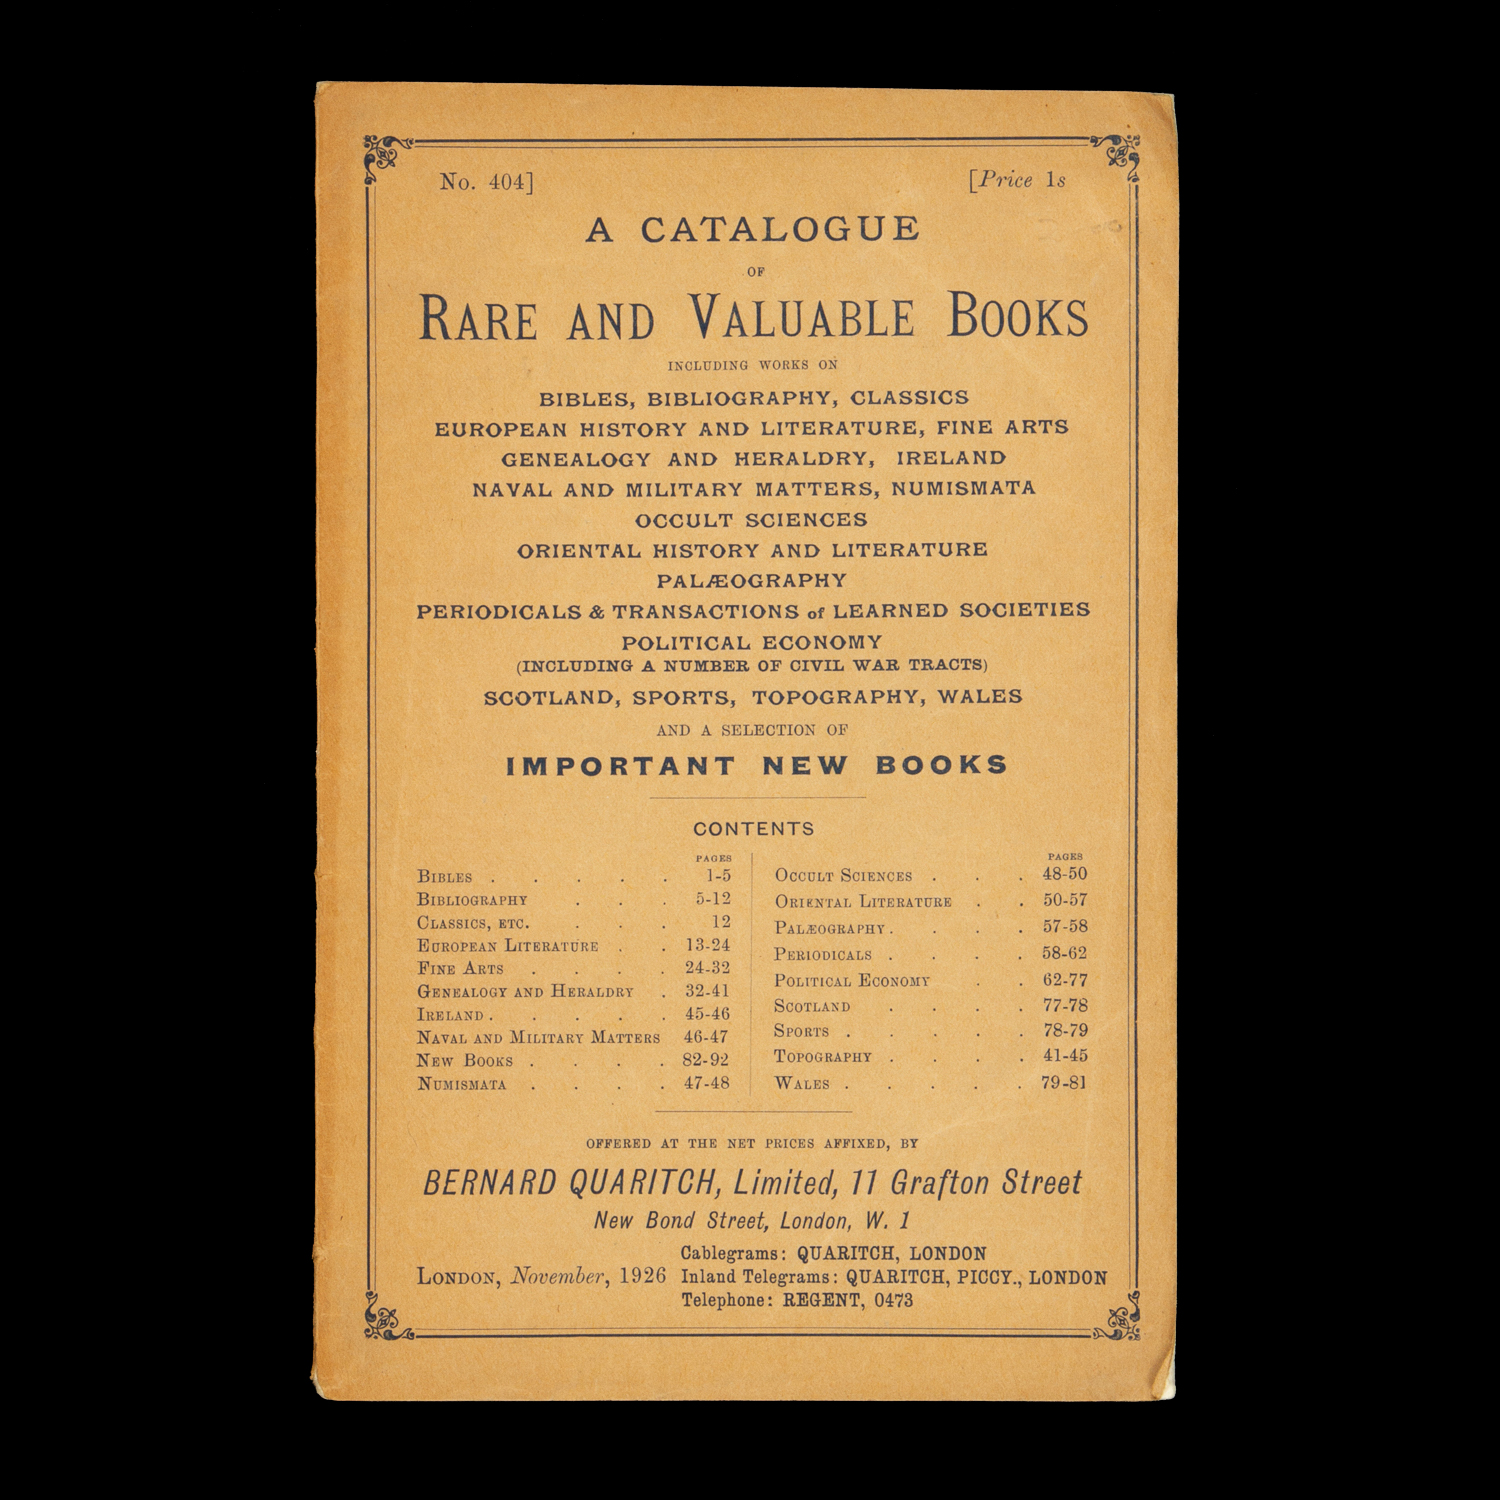 A catalogue of rare and valuable books